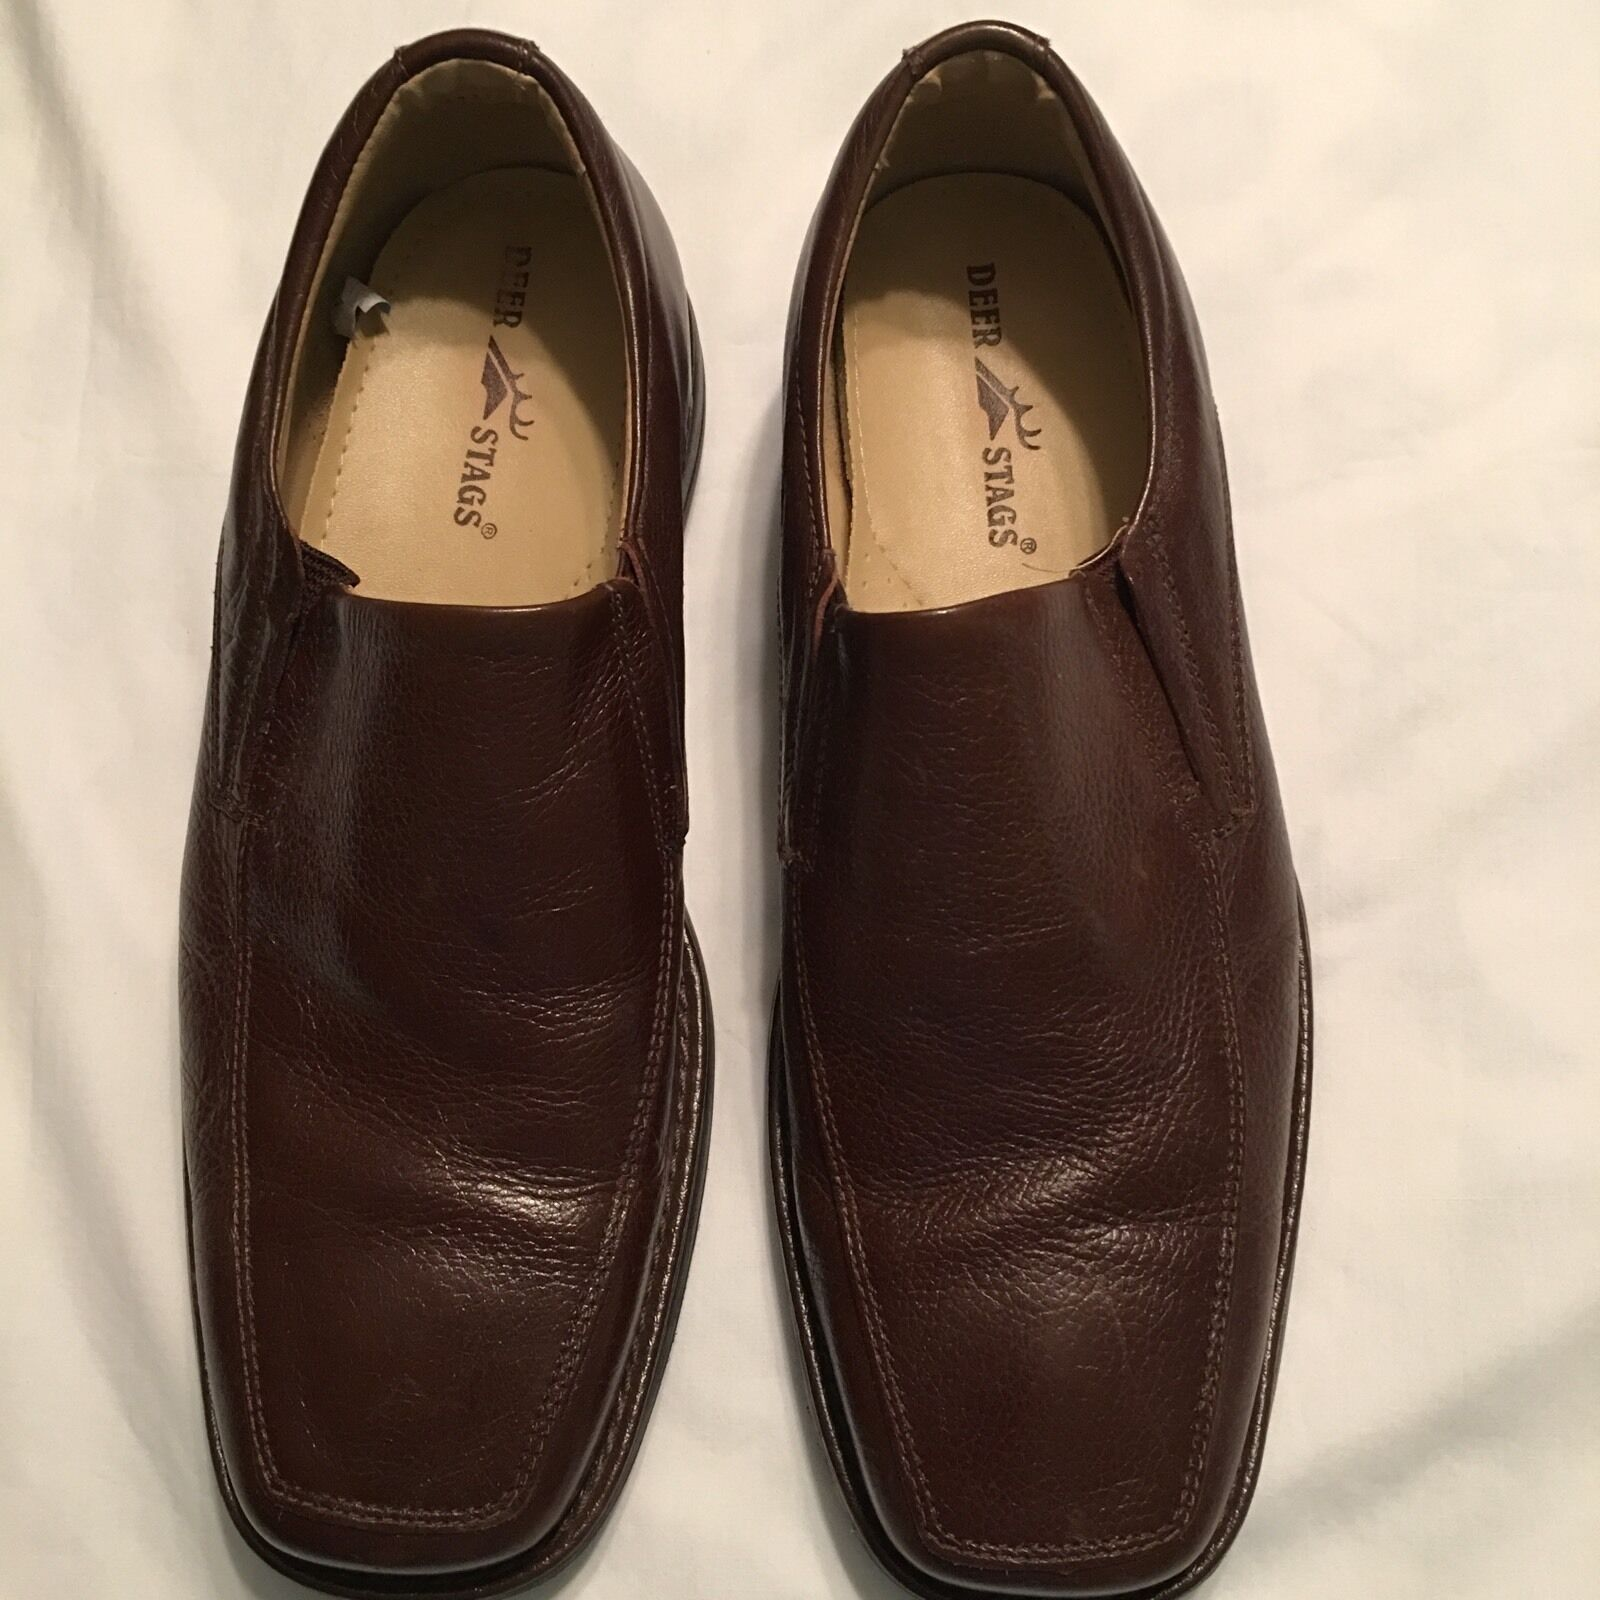 Deer Stags Men Brown Leather Loafer Casual Loafer Leather Slip on Shoes Size 10 1/2M EUC fd9c7d